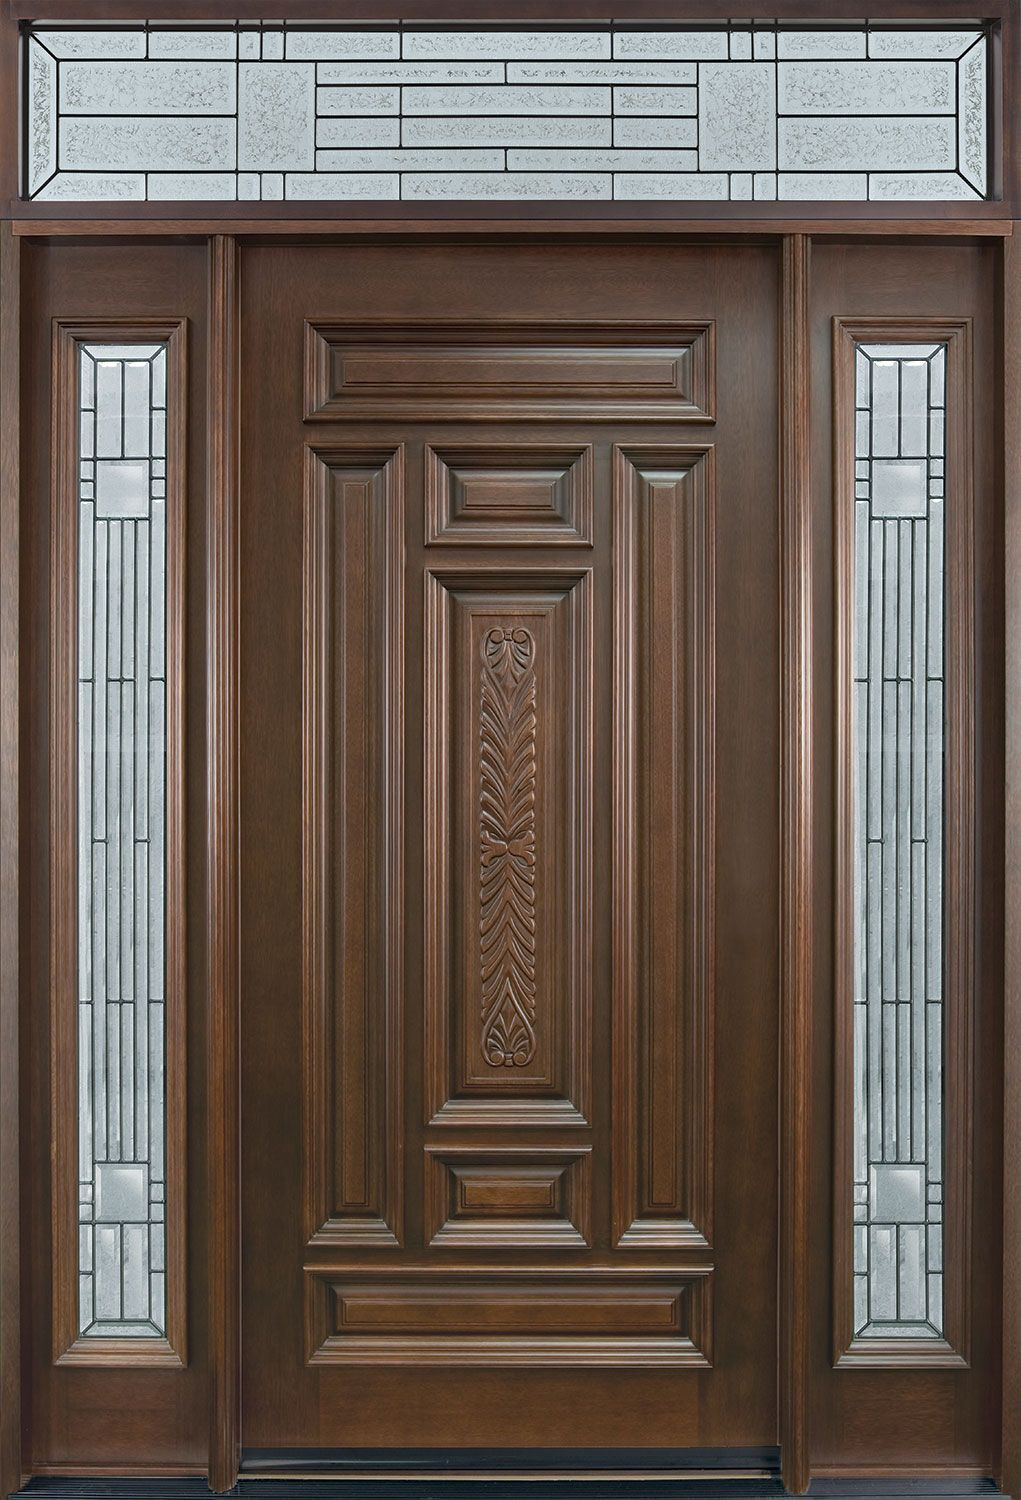 Entry Door In Stock Single With 2 Sidelites Solid Wood With Dark Mahogany Finish Class Wood Exterior Door Wood Front Entry Doors Wooden Front Door Design